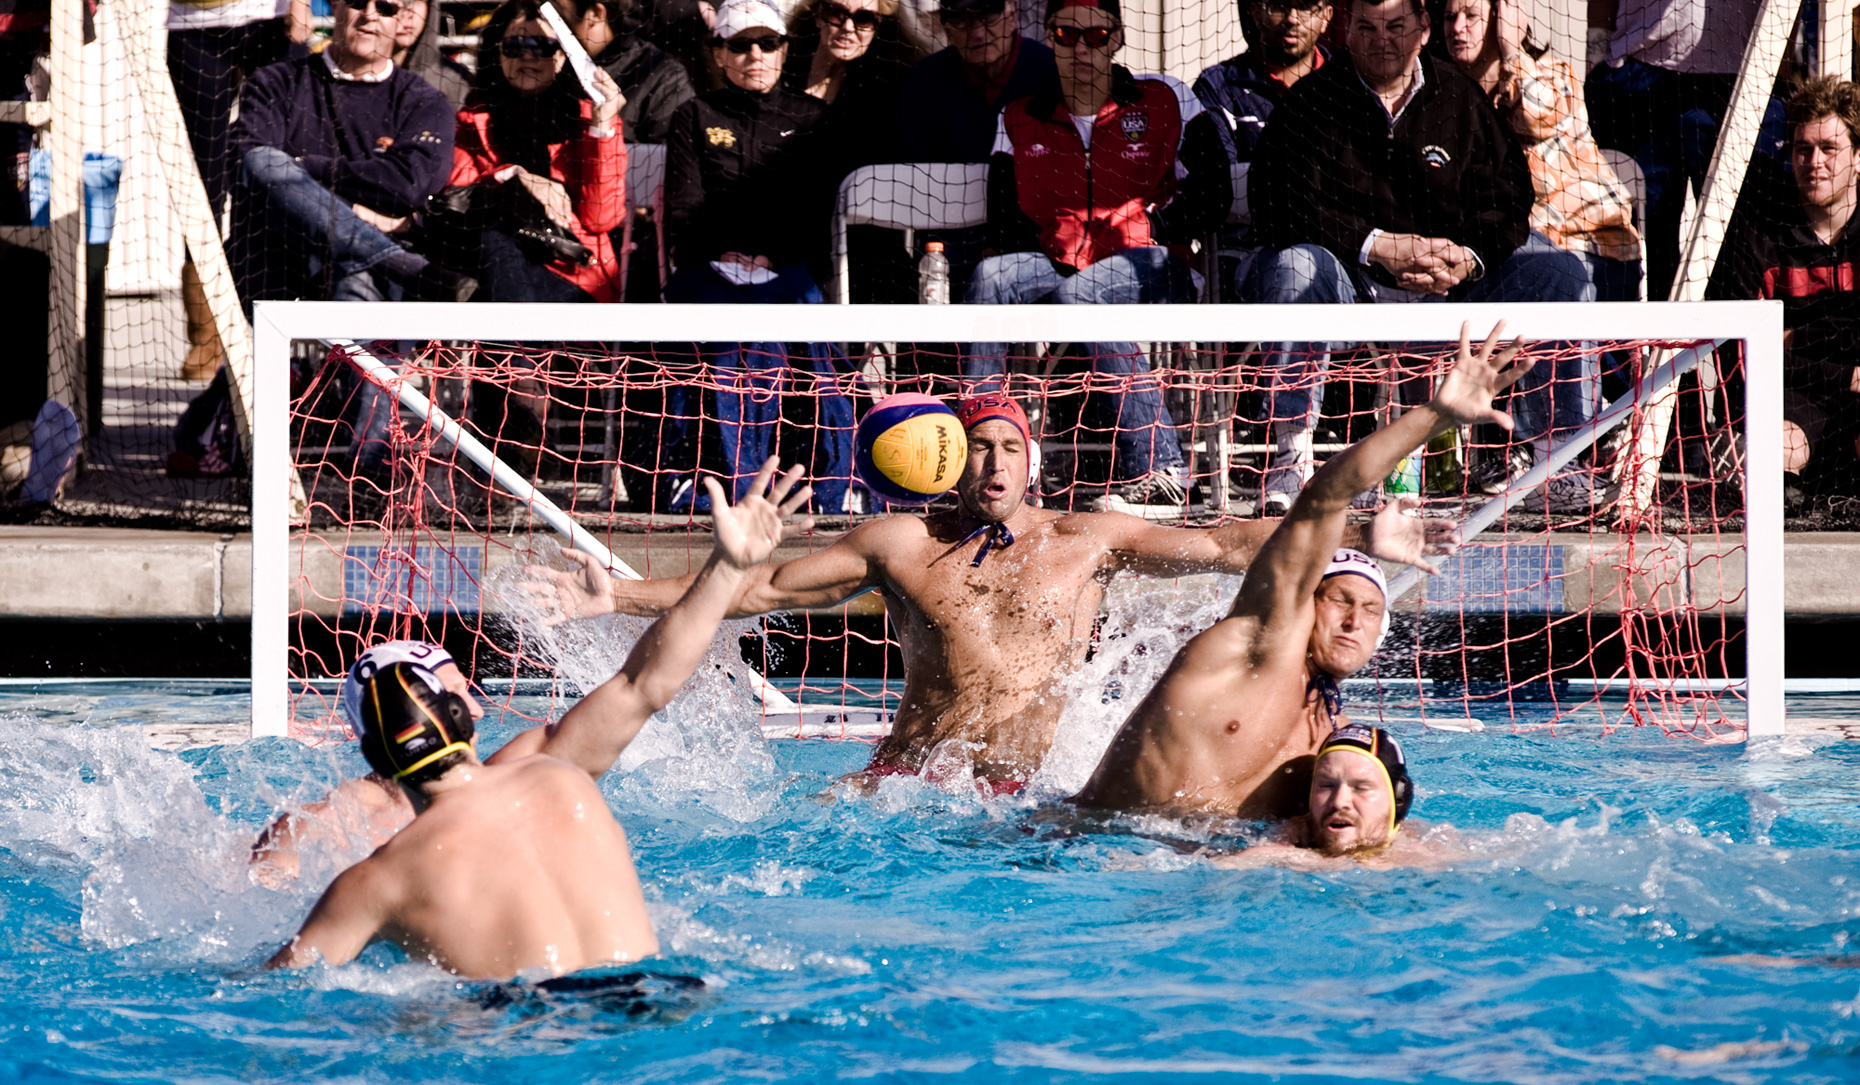 Los Angeles Sports Photography, Michael Brian, athlete, US Olympic Water Polo Team, USA Water Polo